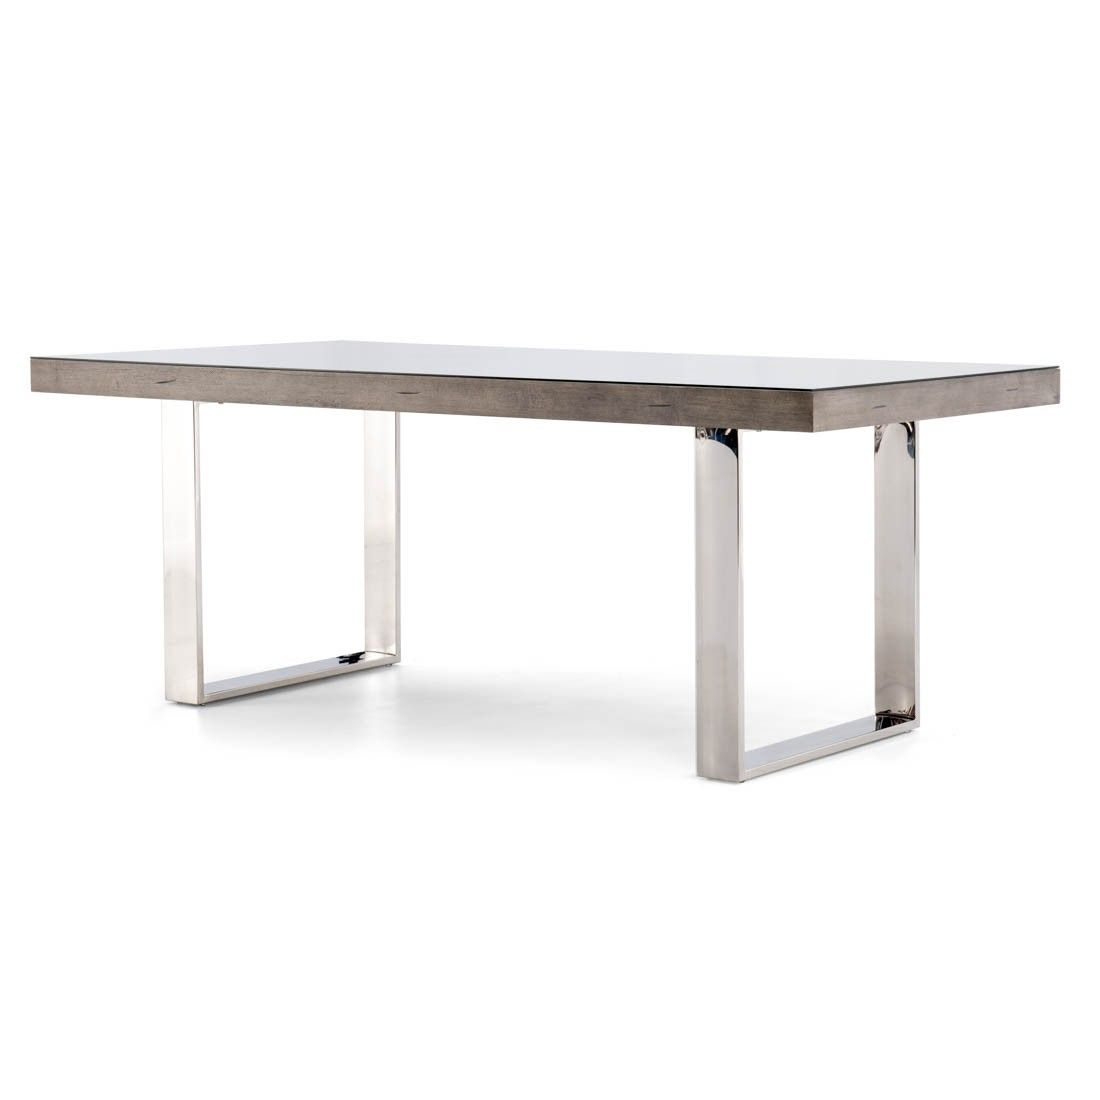 Dining table wood top chrome legs welles mobilia for Mobilia kitchen table